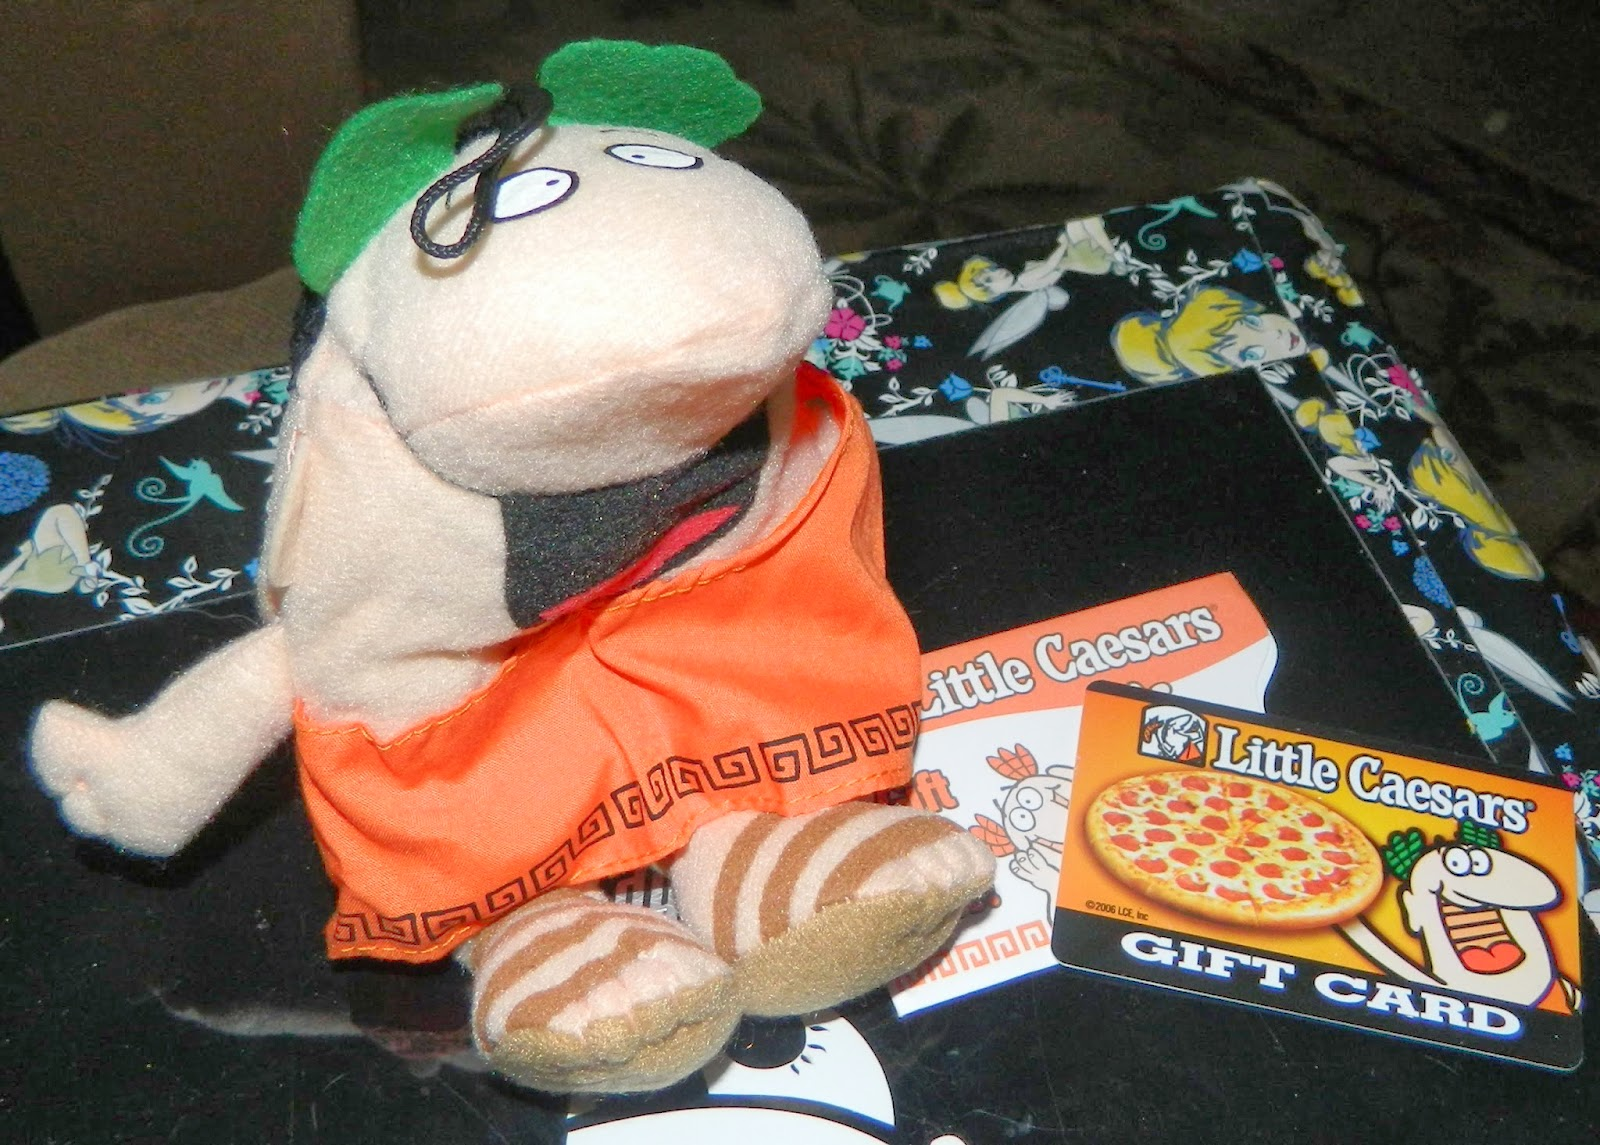 Enter to win a $25 Little Caesars Gift Card and Bean Doll. Ends 3/25.